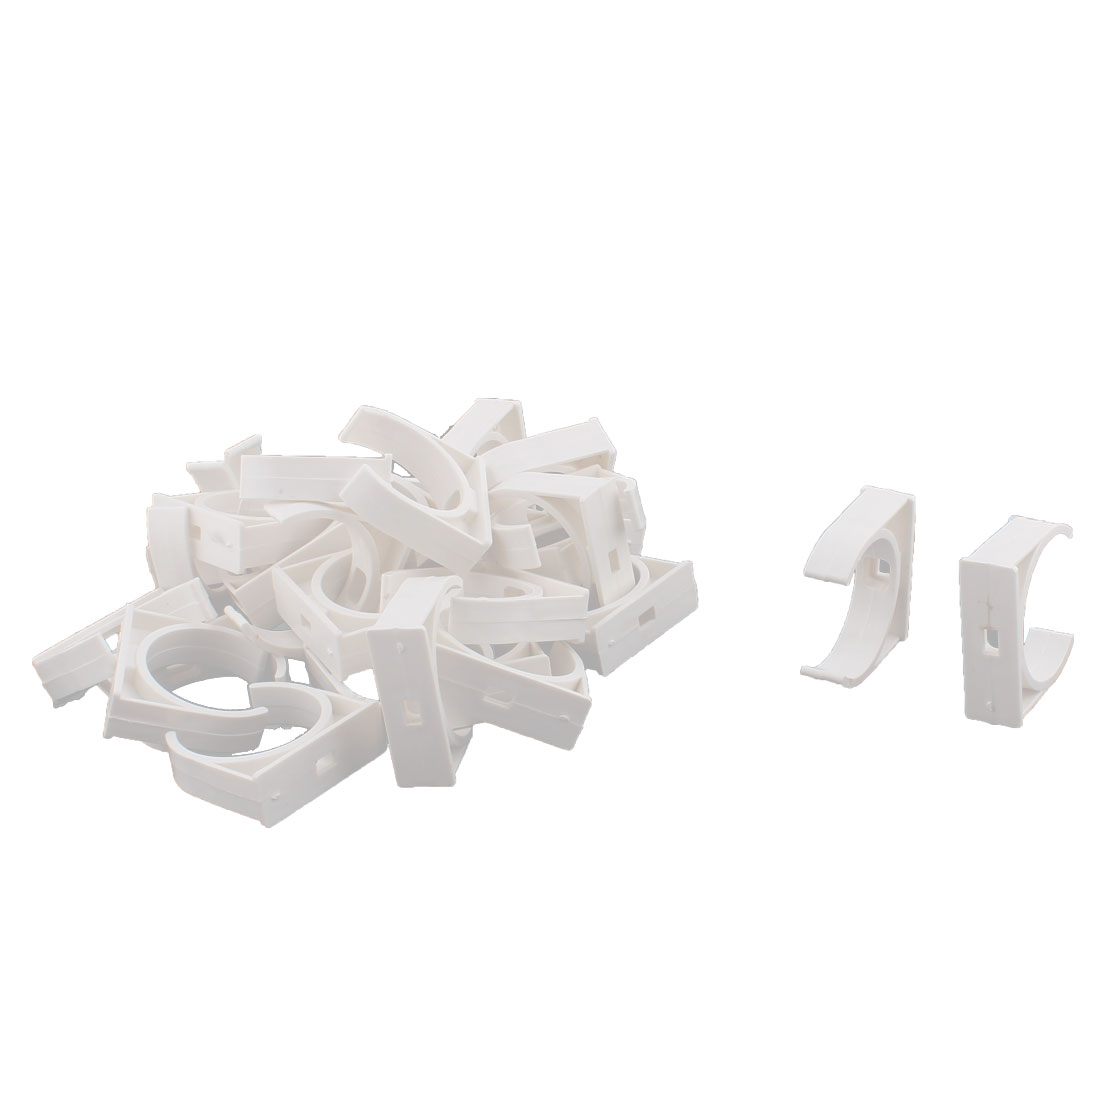 Water Tube Hose Pipe Multifunctional Fittings Parts Clamps Clips 40mm Dia 30pcs